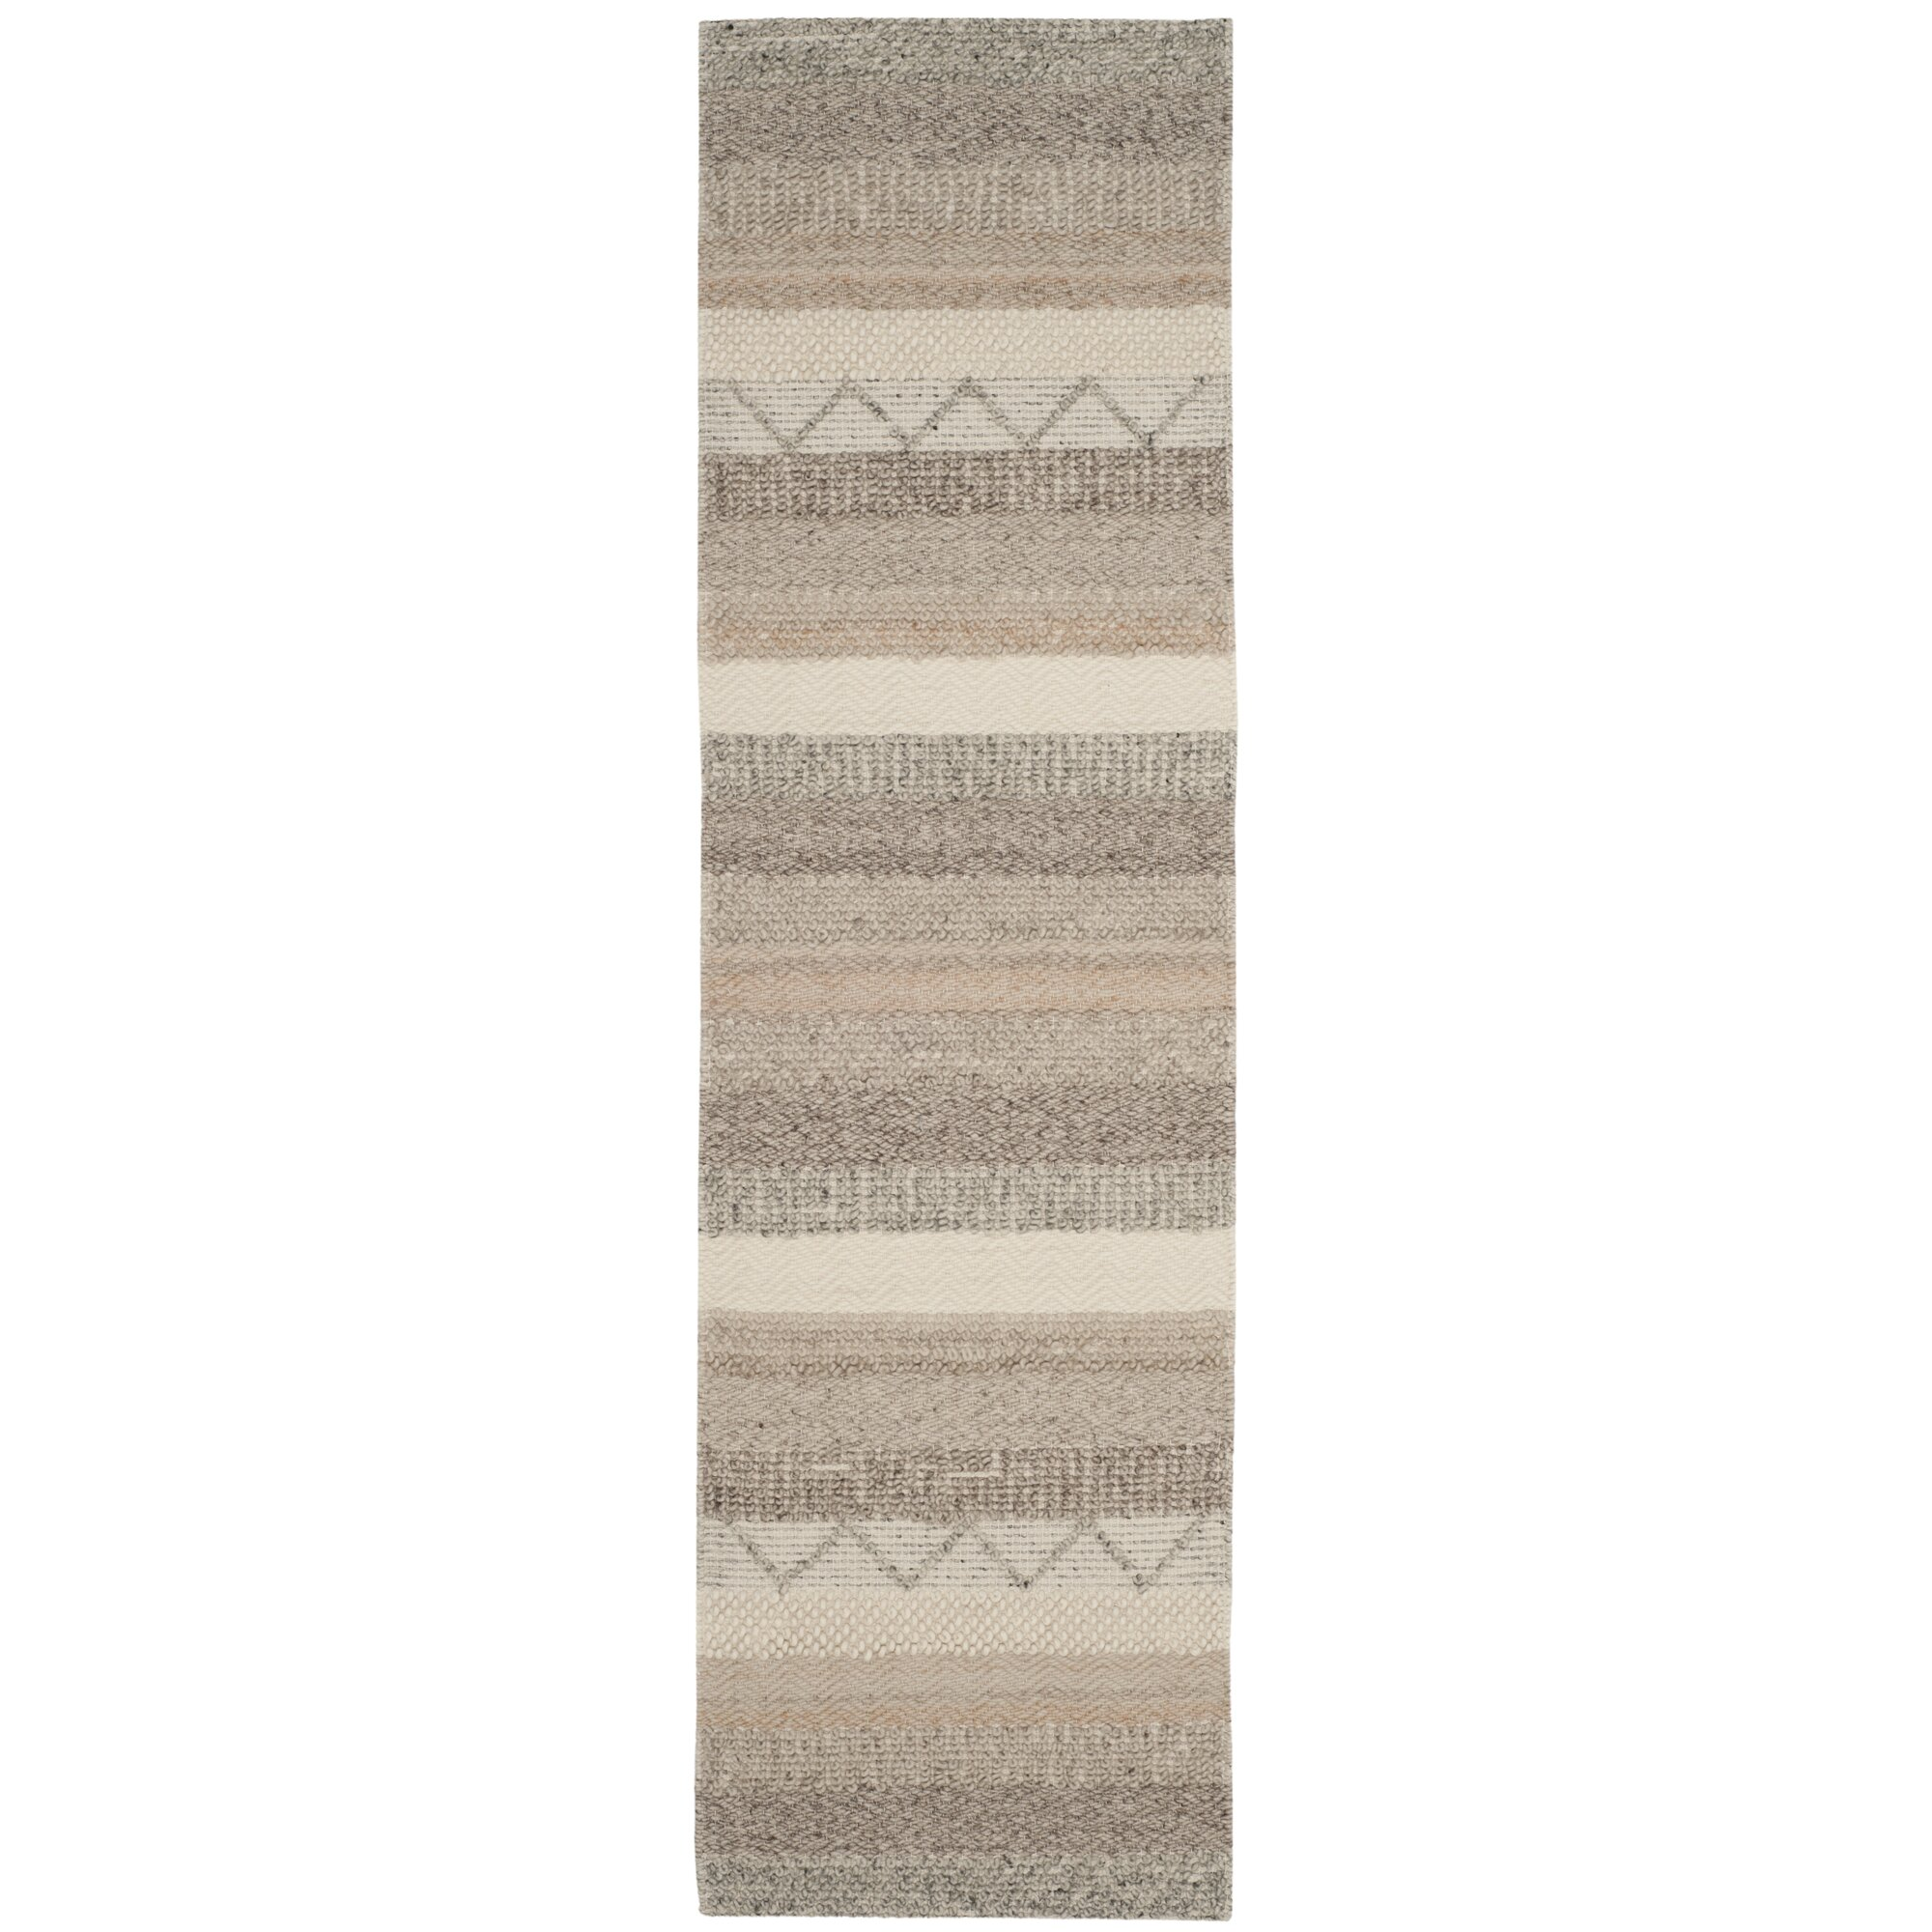 Langley Street Daytona Beach Hand-Tufted Beige Area Rug